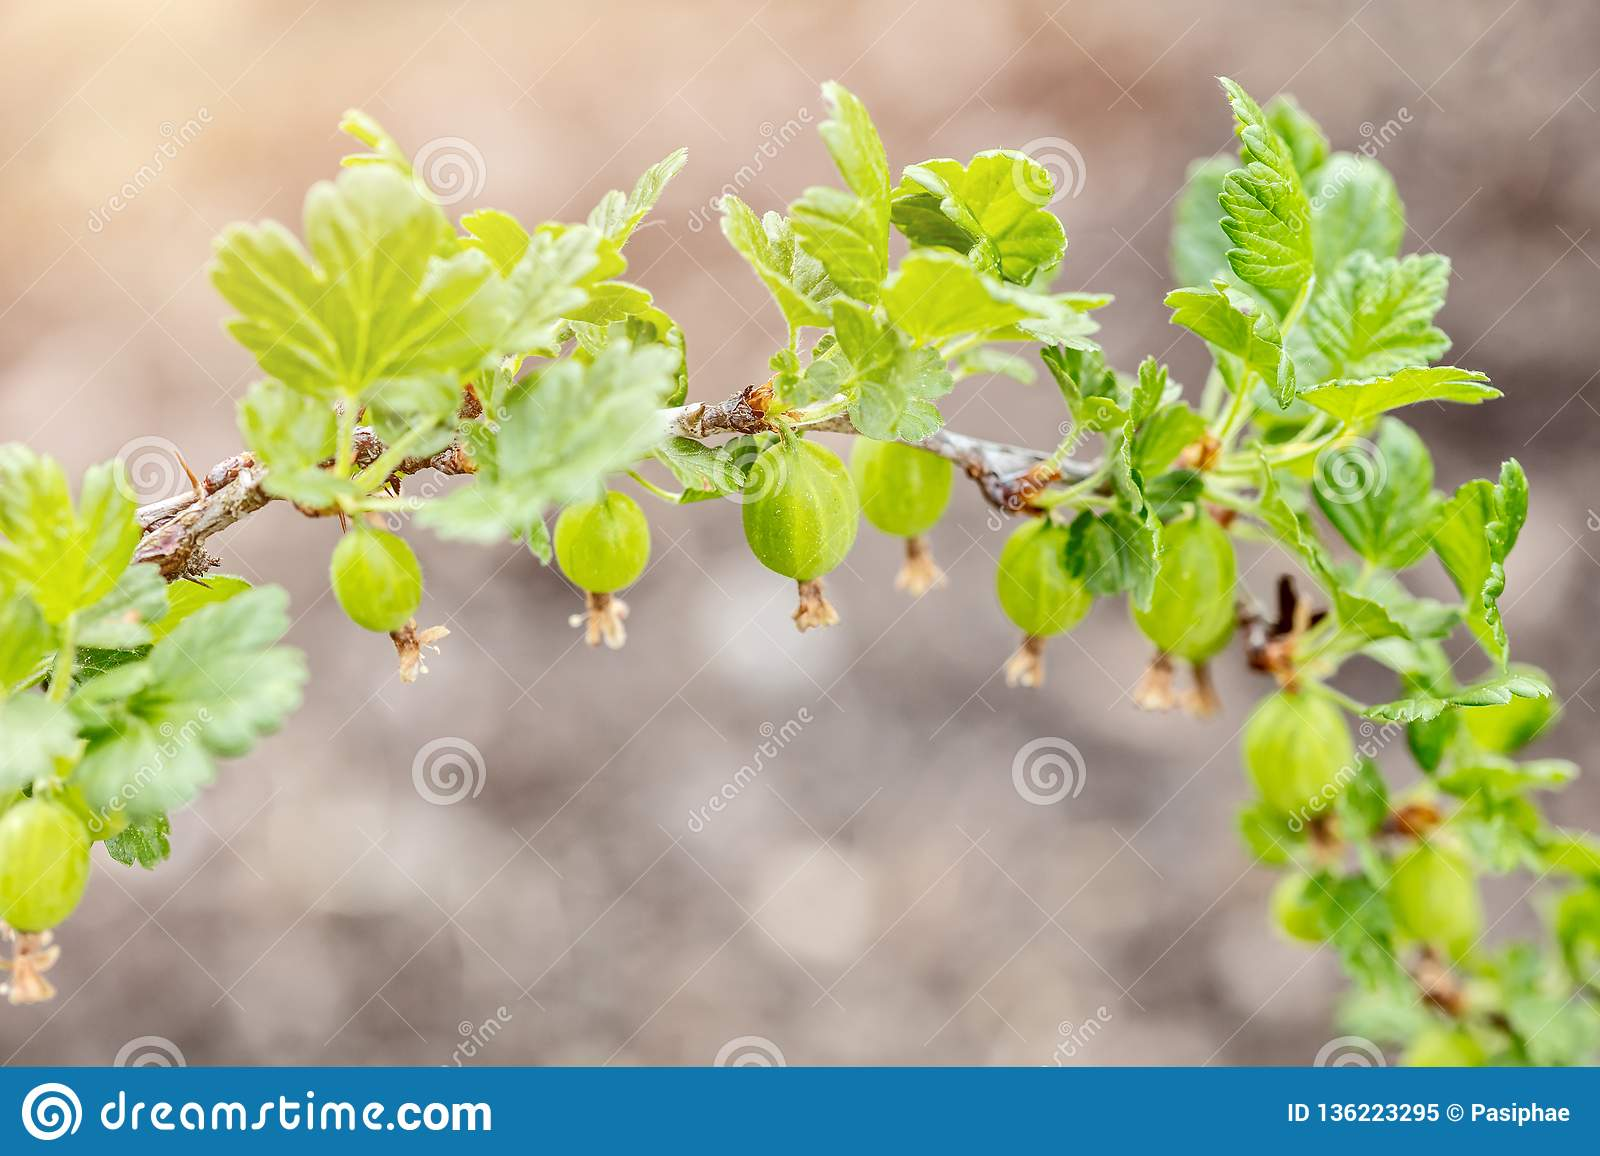 Small Gooseberries on a branch, growth and maturity of Ribes uva-crispa